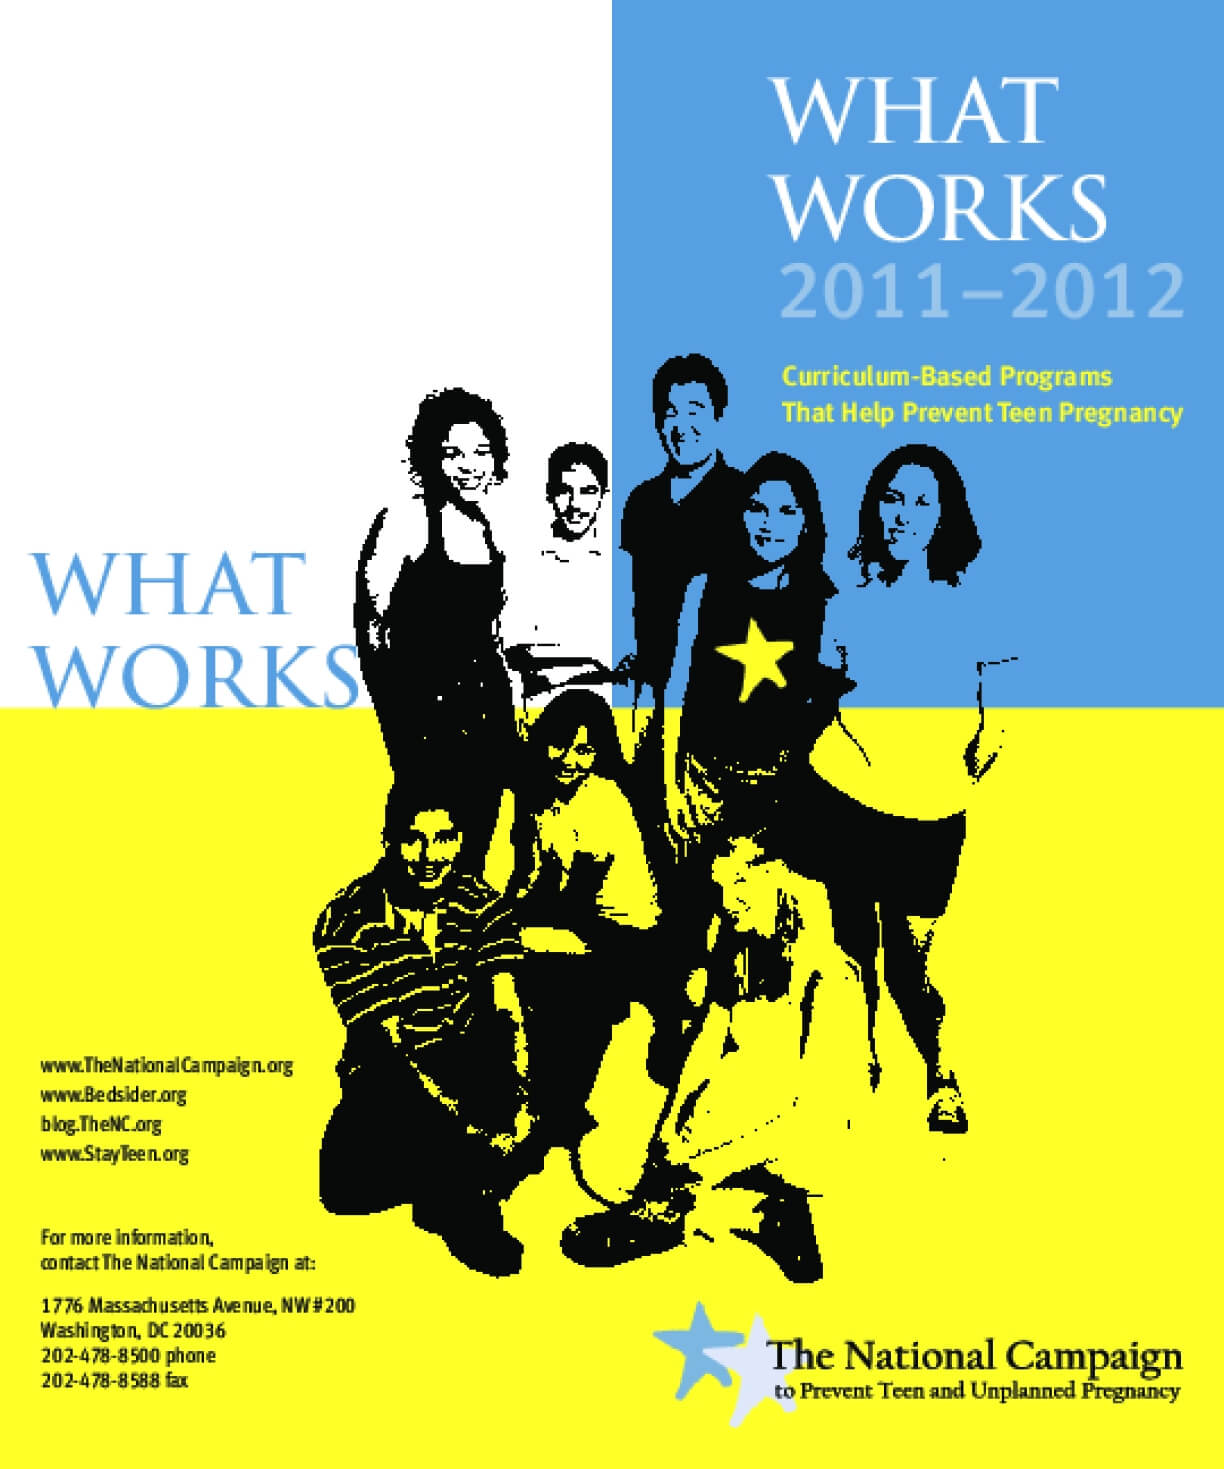 What Works 2011-2012: Curriculum Based Programs That Help Prevent Teen Pregnancy